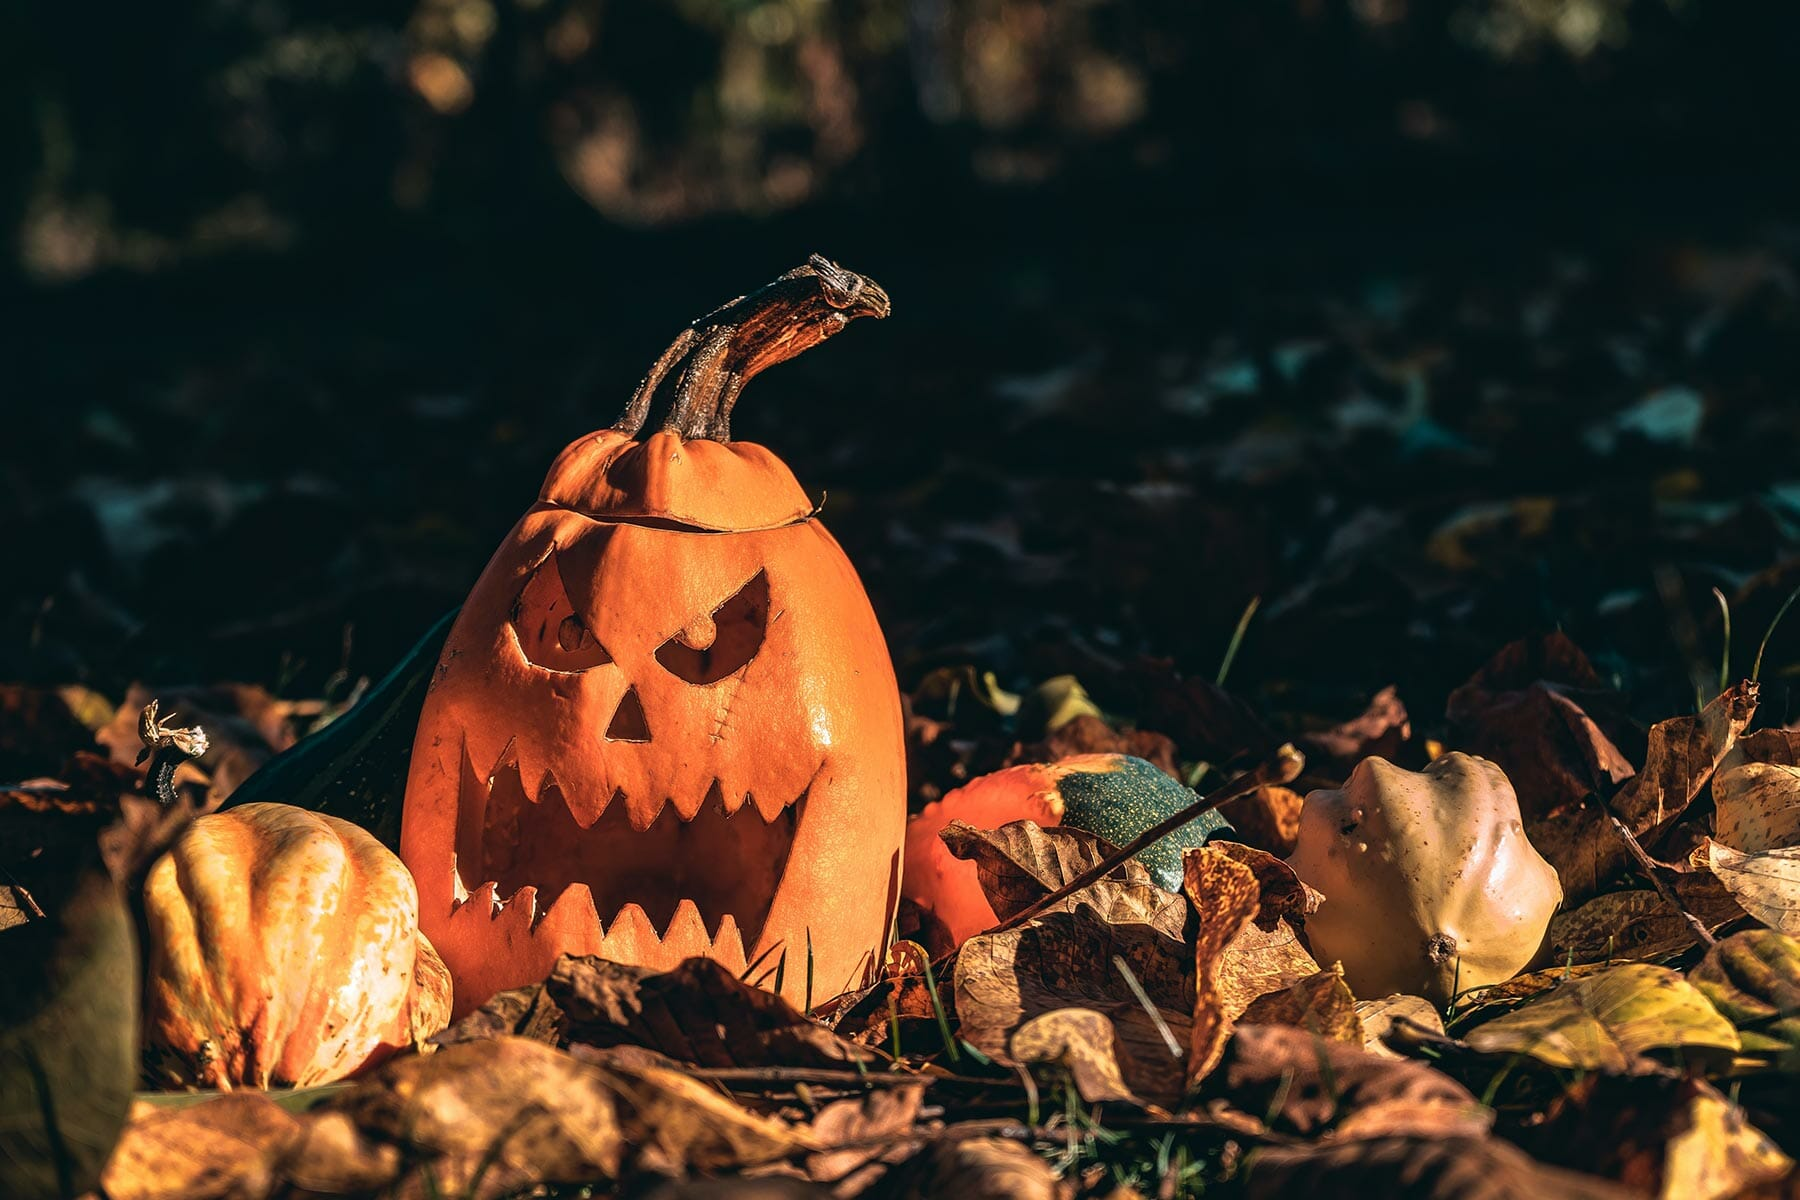 Jack-o-lantern on the ground with leaves